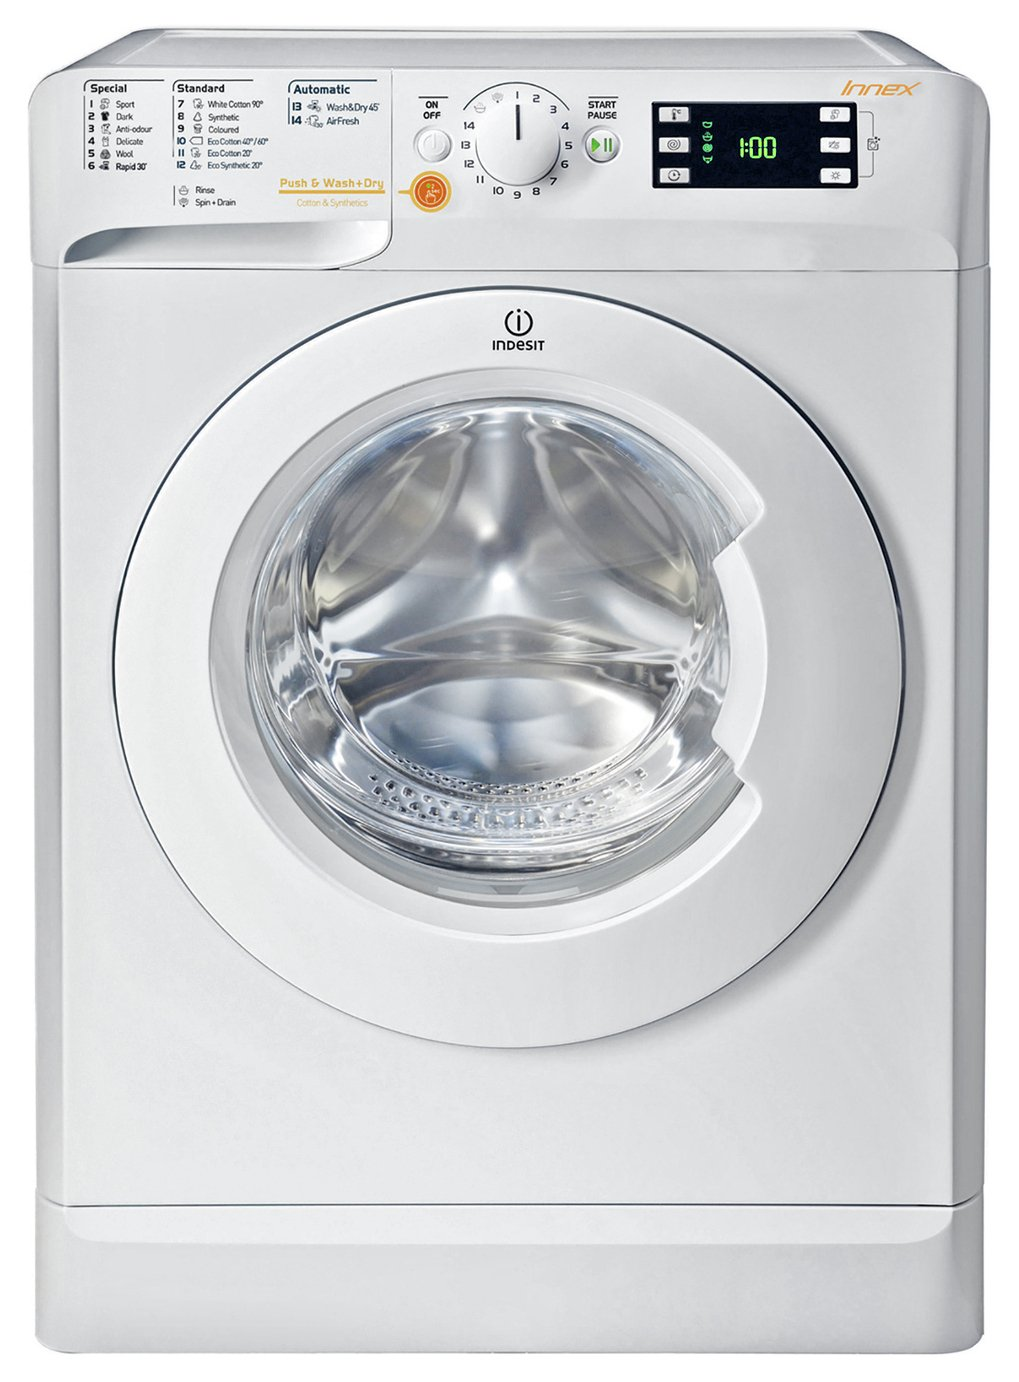 Indesit WDE861680XWUK 6KG 1400 Spin Washer Dryer - White